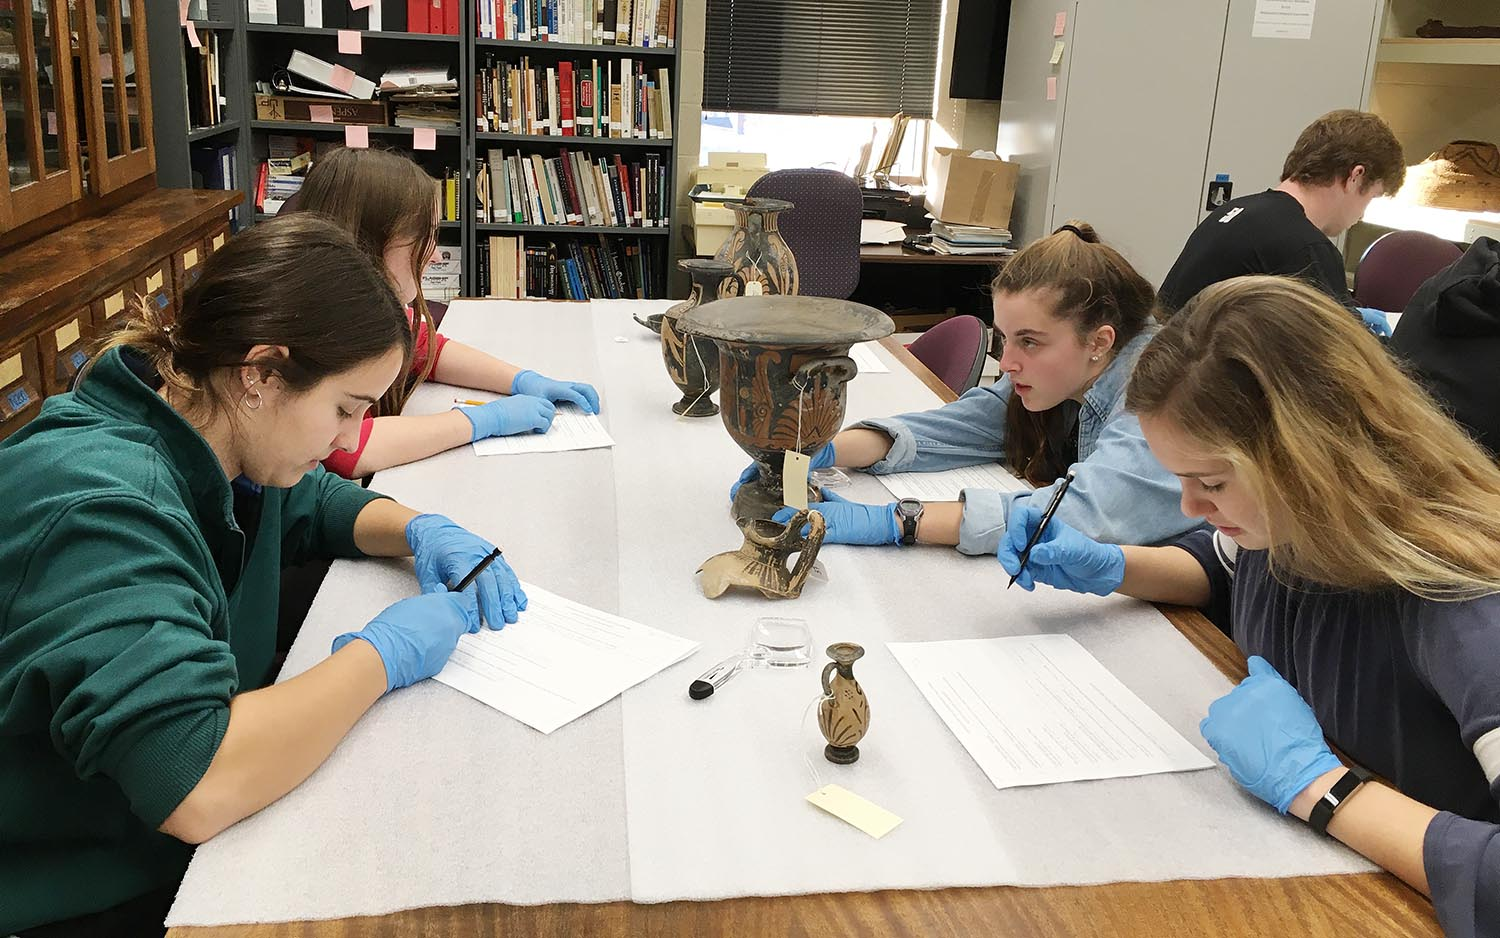 The Wesleyan University Archaeology and Anthropology Collections (WUAAC) is located on the third floor of Exley Science Center and contains more than 30,000 archaeological and ethnographic objects from around the world. These objects are used in the hands-on teaching of various subjects, including archaeology, anthropology, history, museum science, classics, and more. Wesleyan faculty and students are encouraged to utilize the collections for teaching and research. Pictured, the class is examining classical Greek pottery